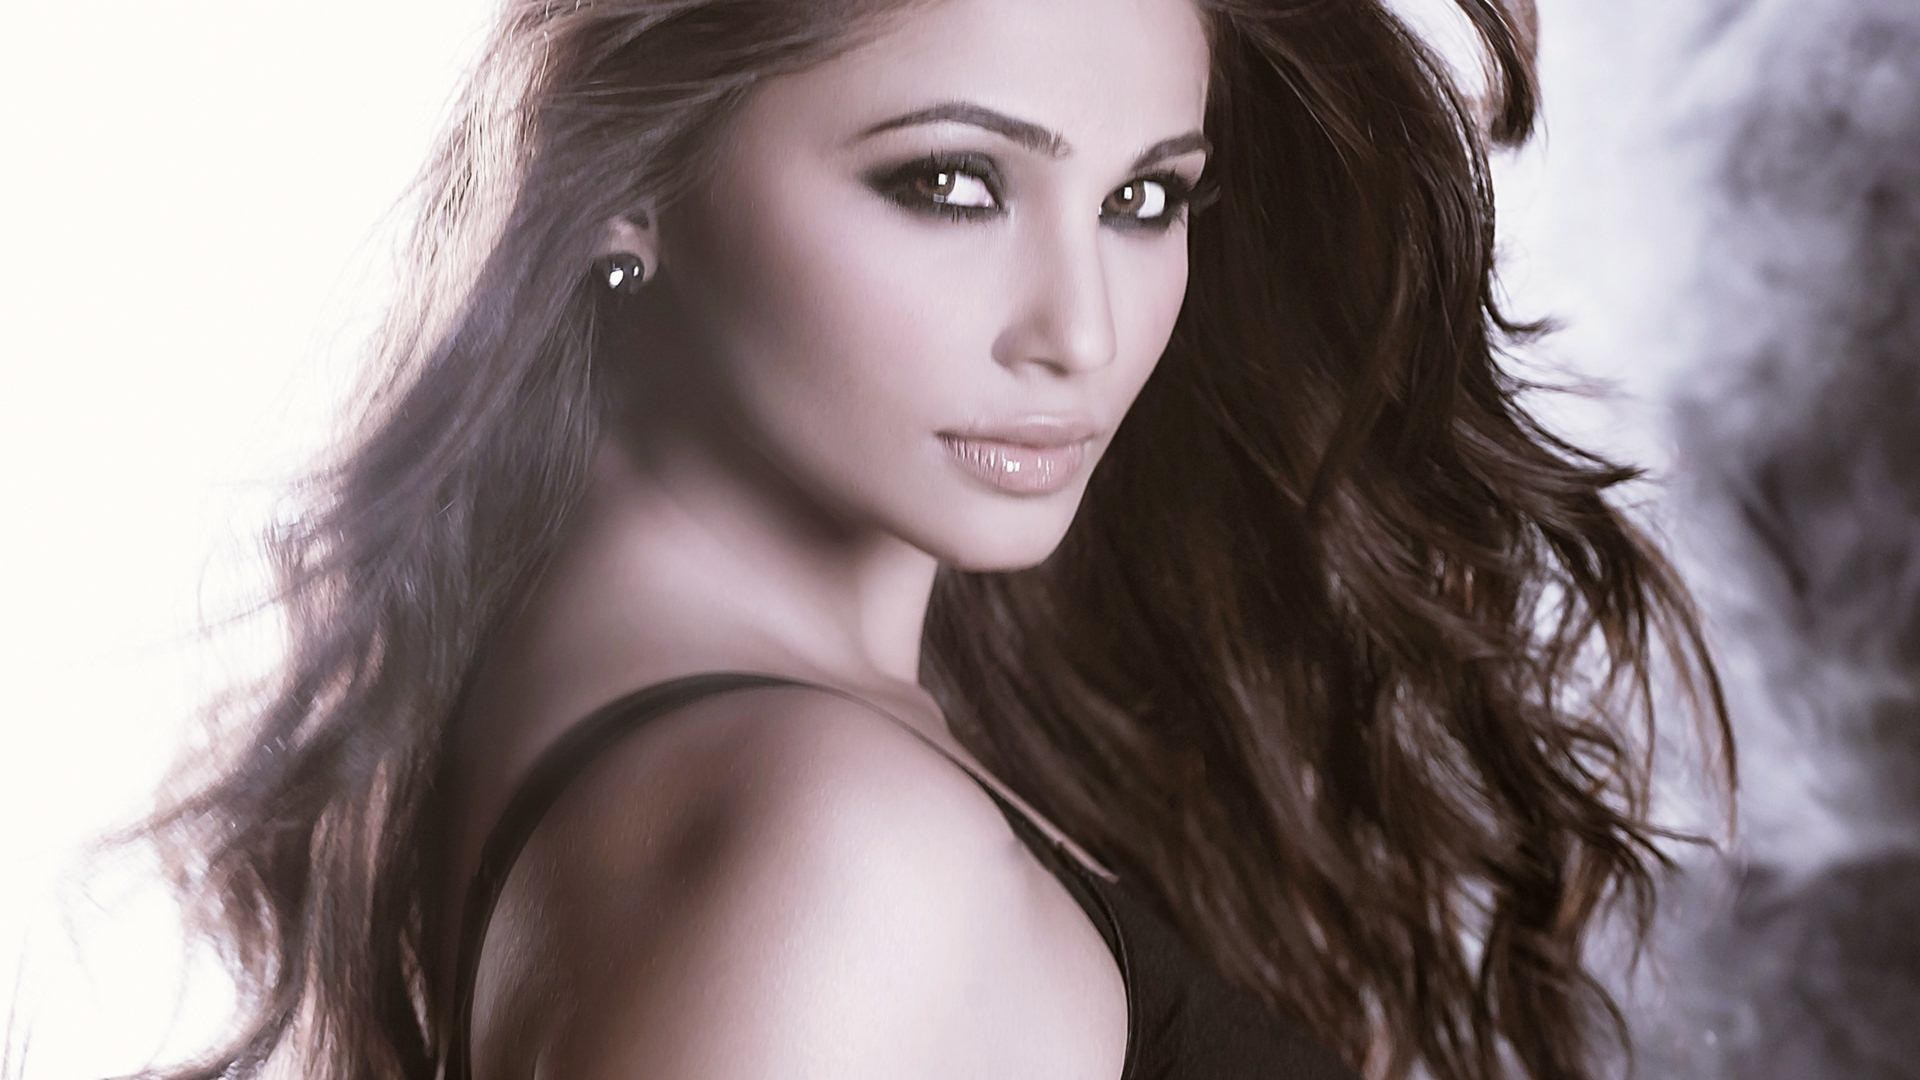 Daisy Shah | Known people - famous people news and biographies